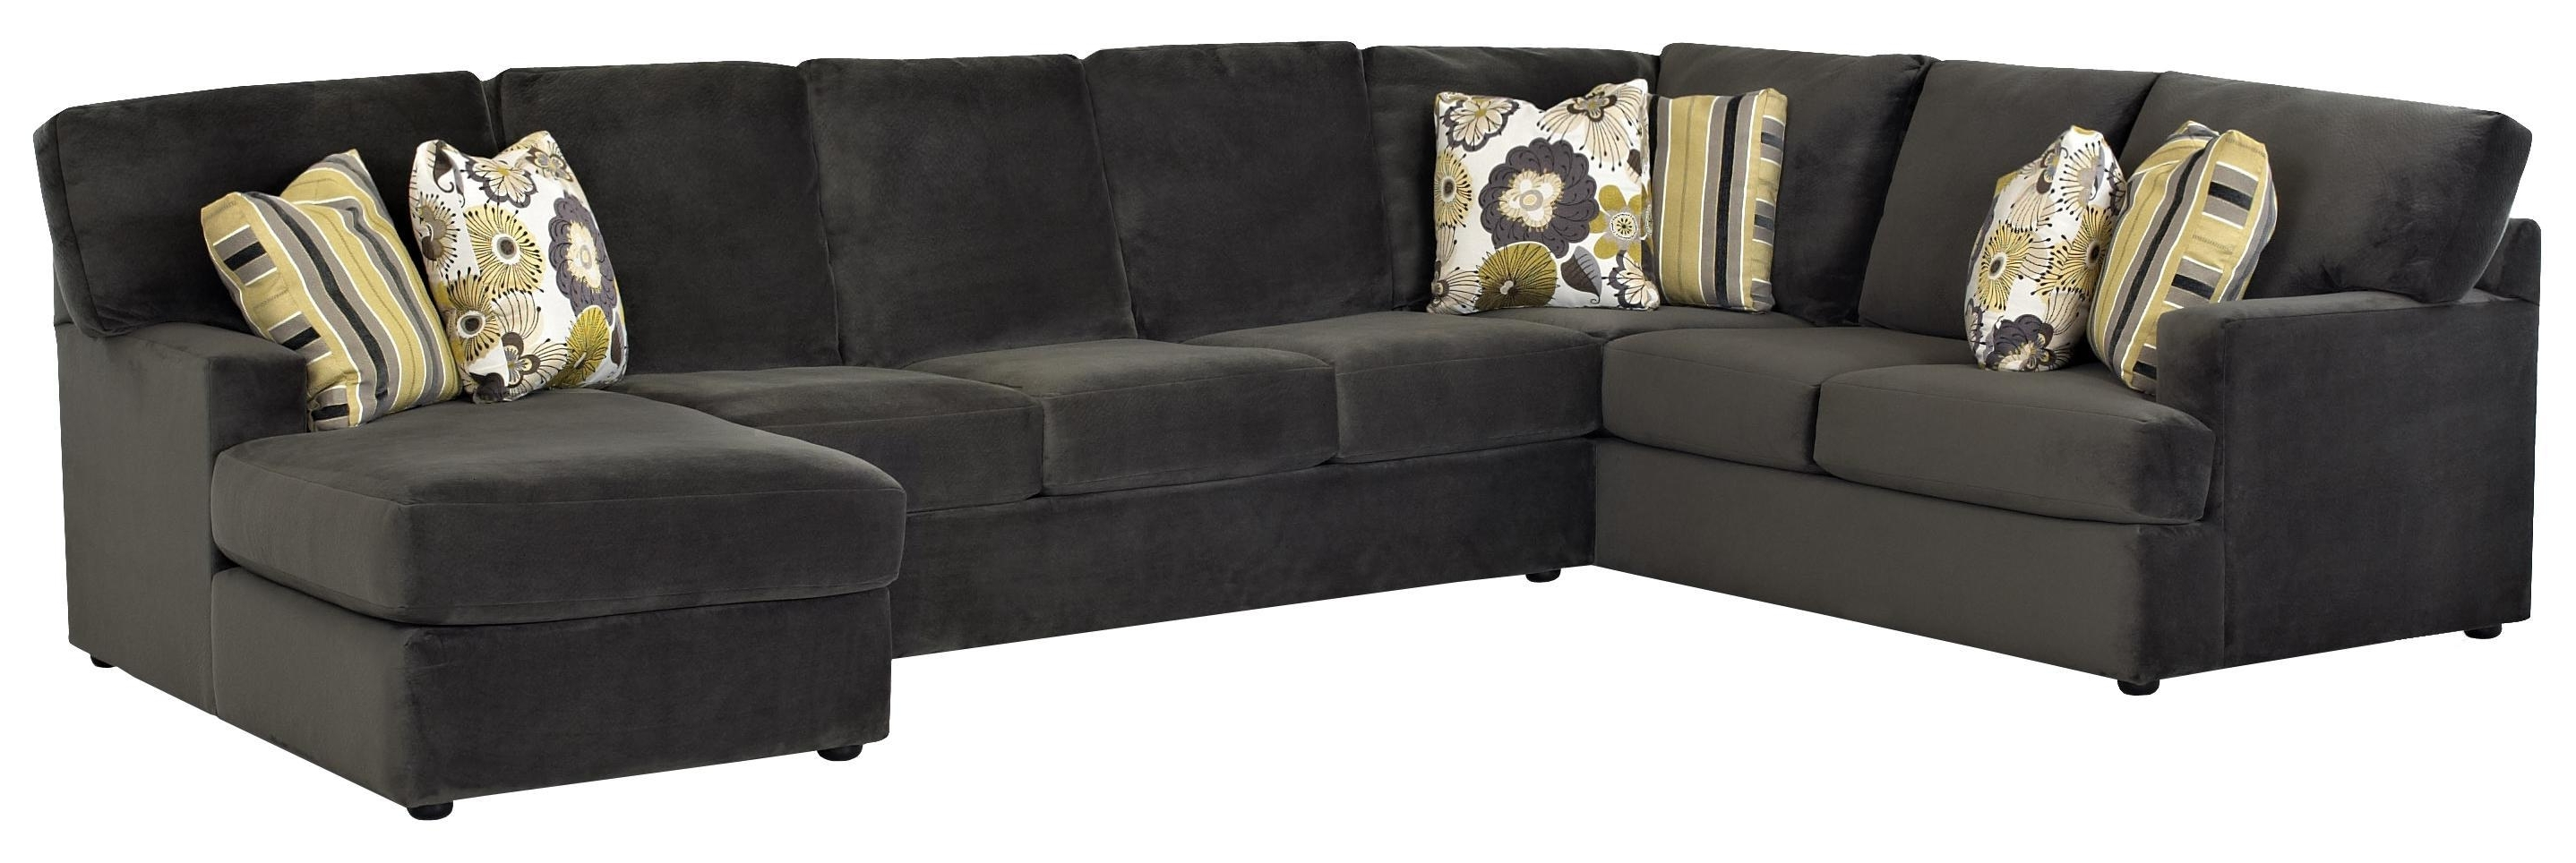 Most Recently Released Stunning The Dump Furniture Sectional Sofa For Home Pic Haynes With Haynes Sectional Sofas (View 13 of 20)